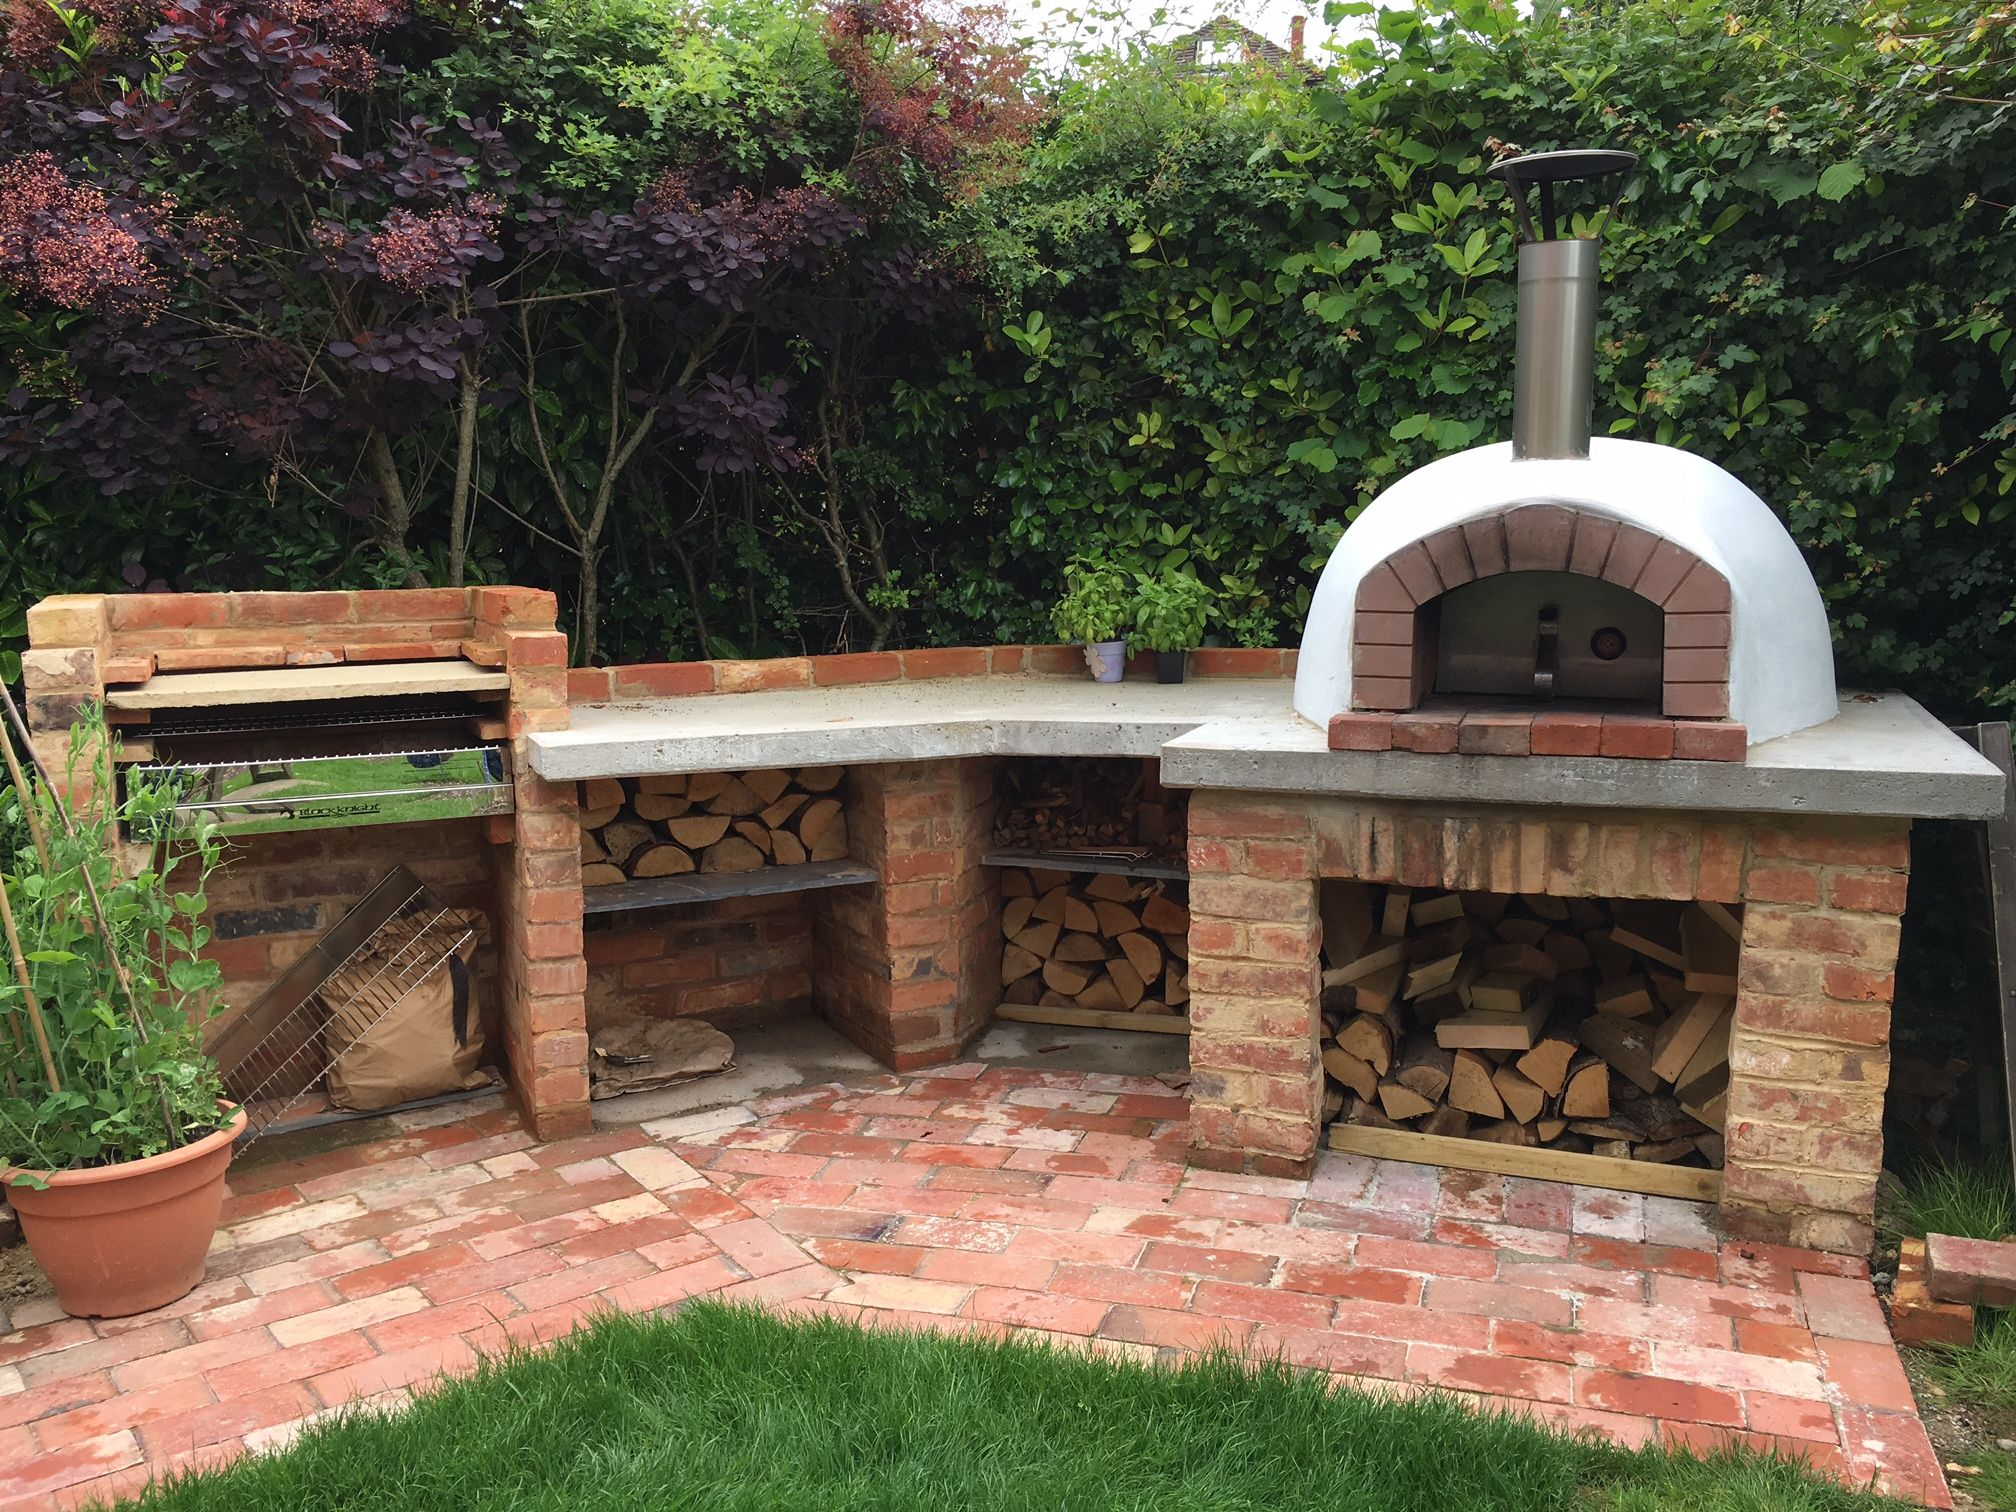 Https Www Thestonebakeovencompany Co Uk Wp Wp Content Uploads Image1 2 9 Jpg Outdoor Kitchen Design Pizza Oven Outdoor Kitchen Outdoor Kitchen